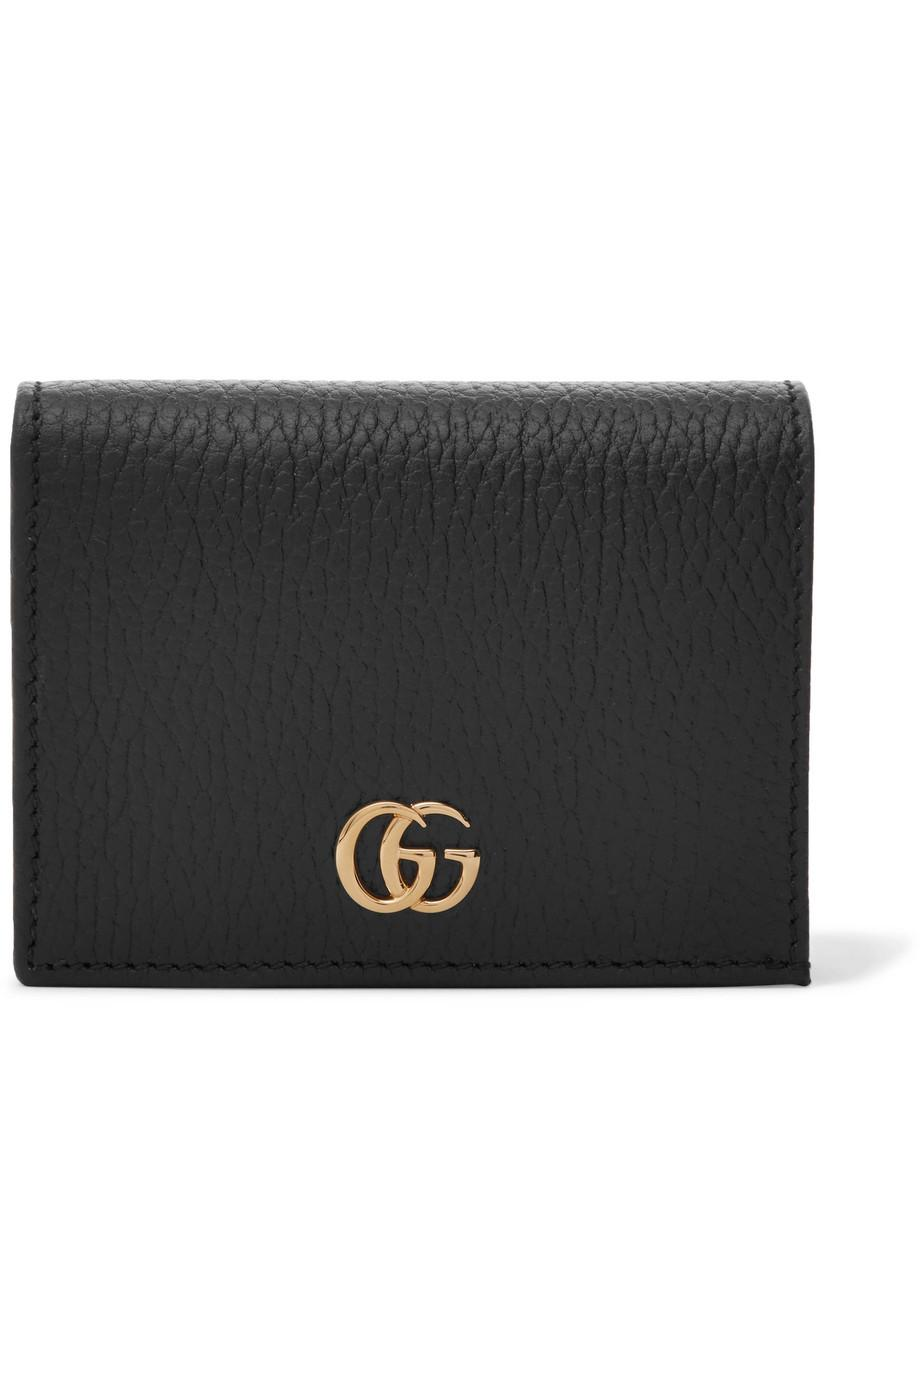 Marmont Petite Textured-leather Wallet - Black Gucci AcvcHRFBs